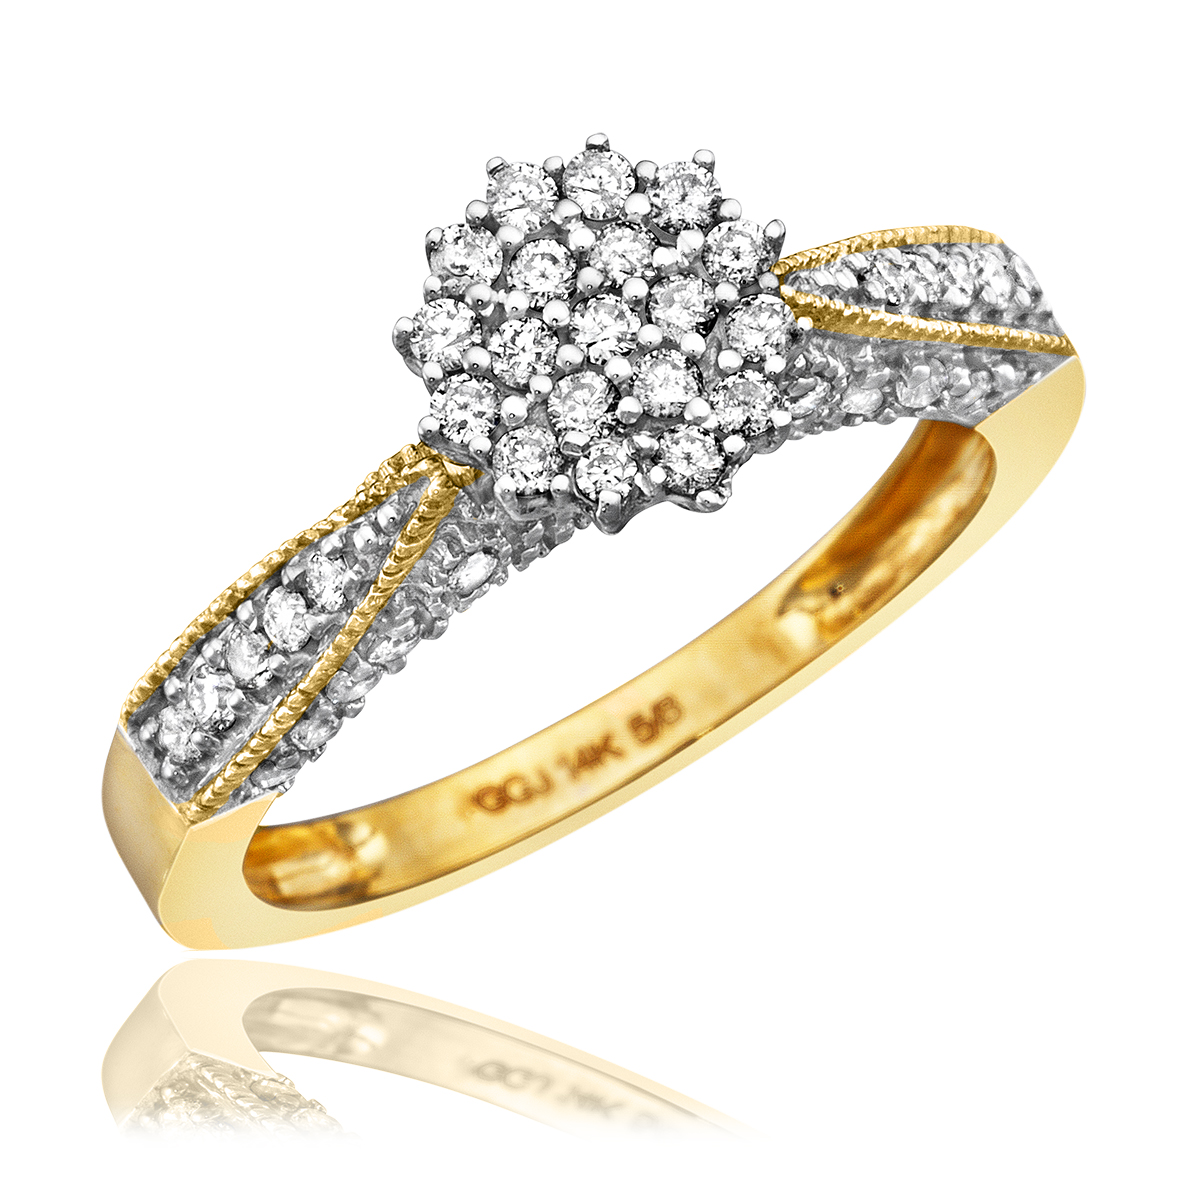 1/2 CT. T.W. Diamond Ladies' Engagement Ring 14K Yellow Gold